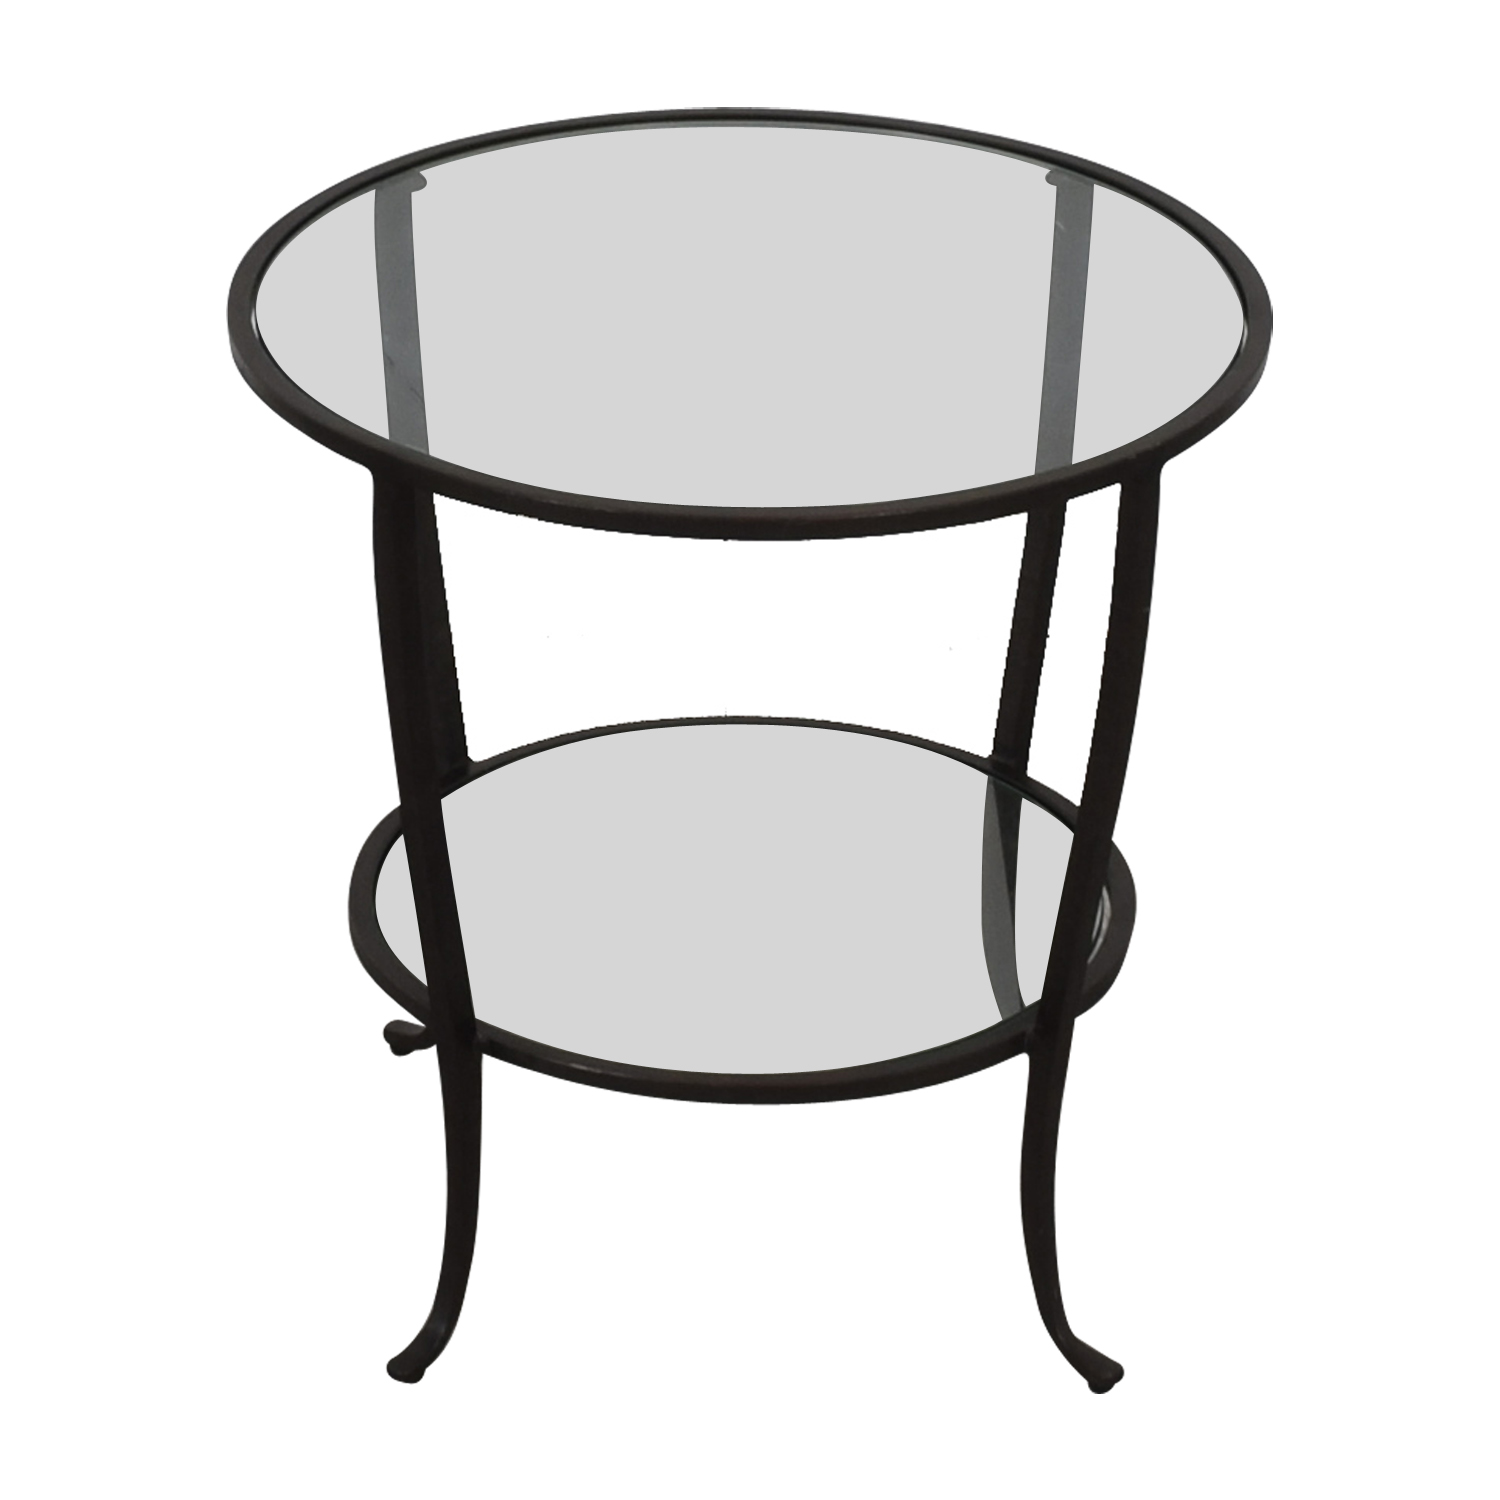 Pottery Barn Pottery Barn Round Metal & Glass Table